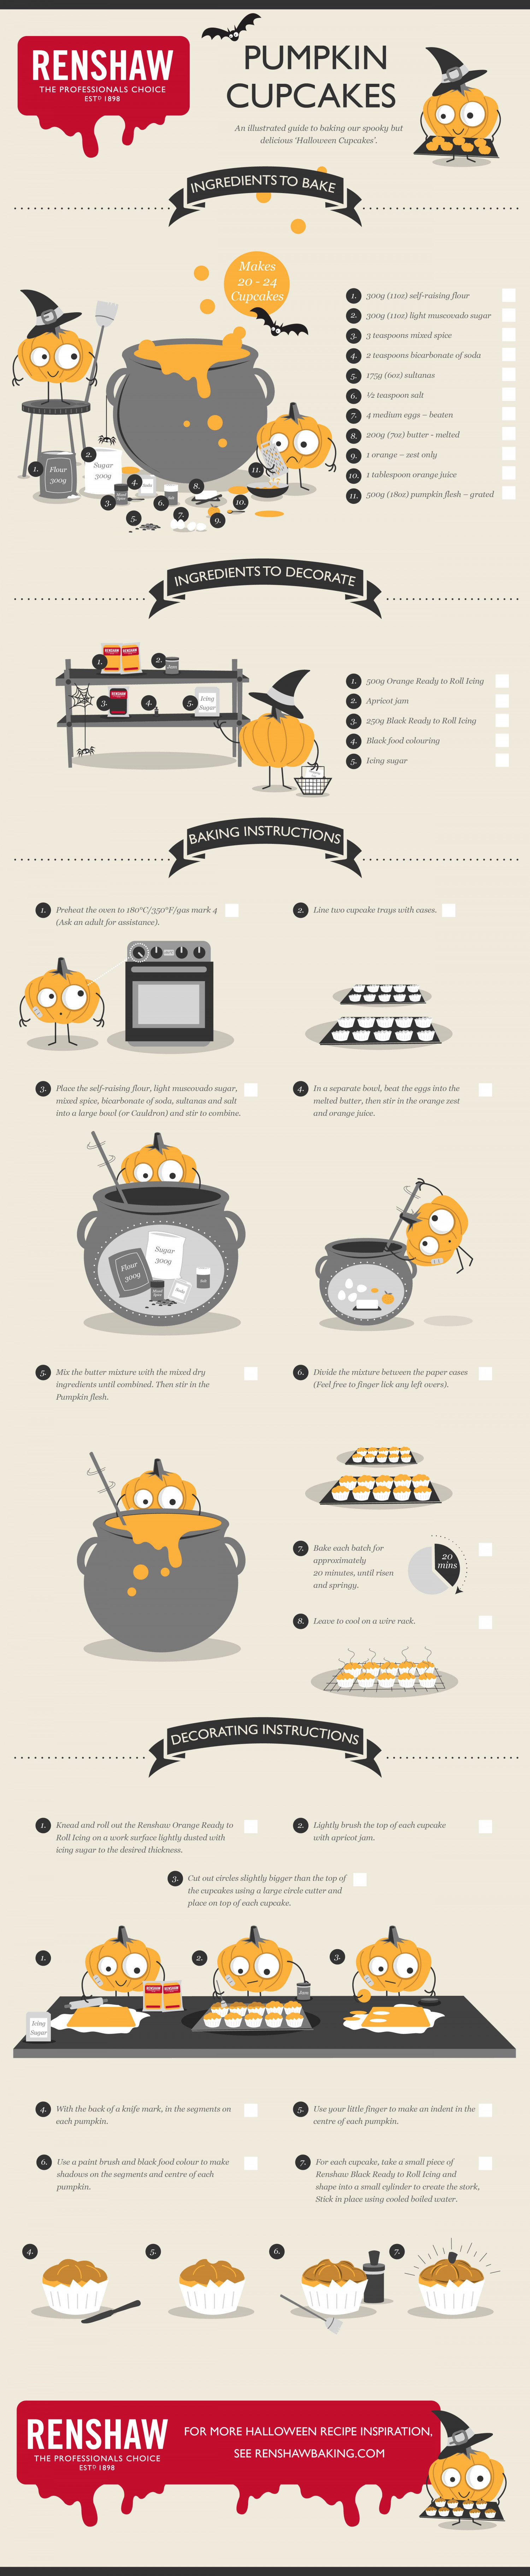 Our Spookylicious Pumpkin Cupcake Recipe Infographic